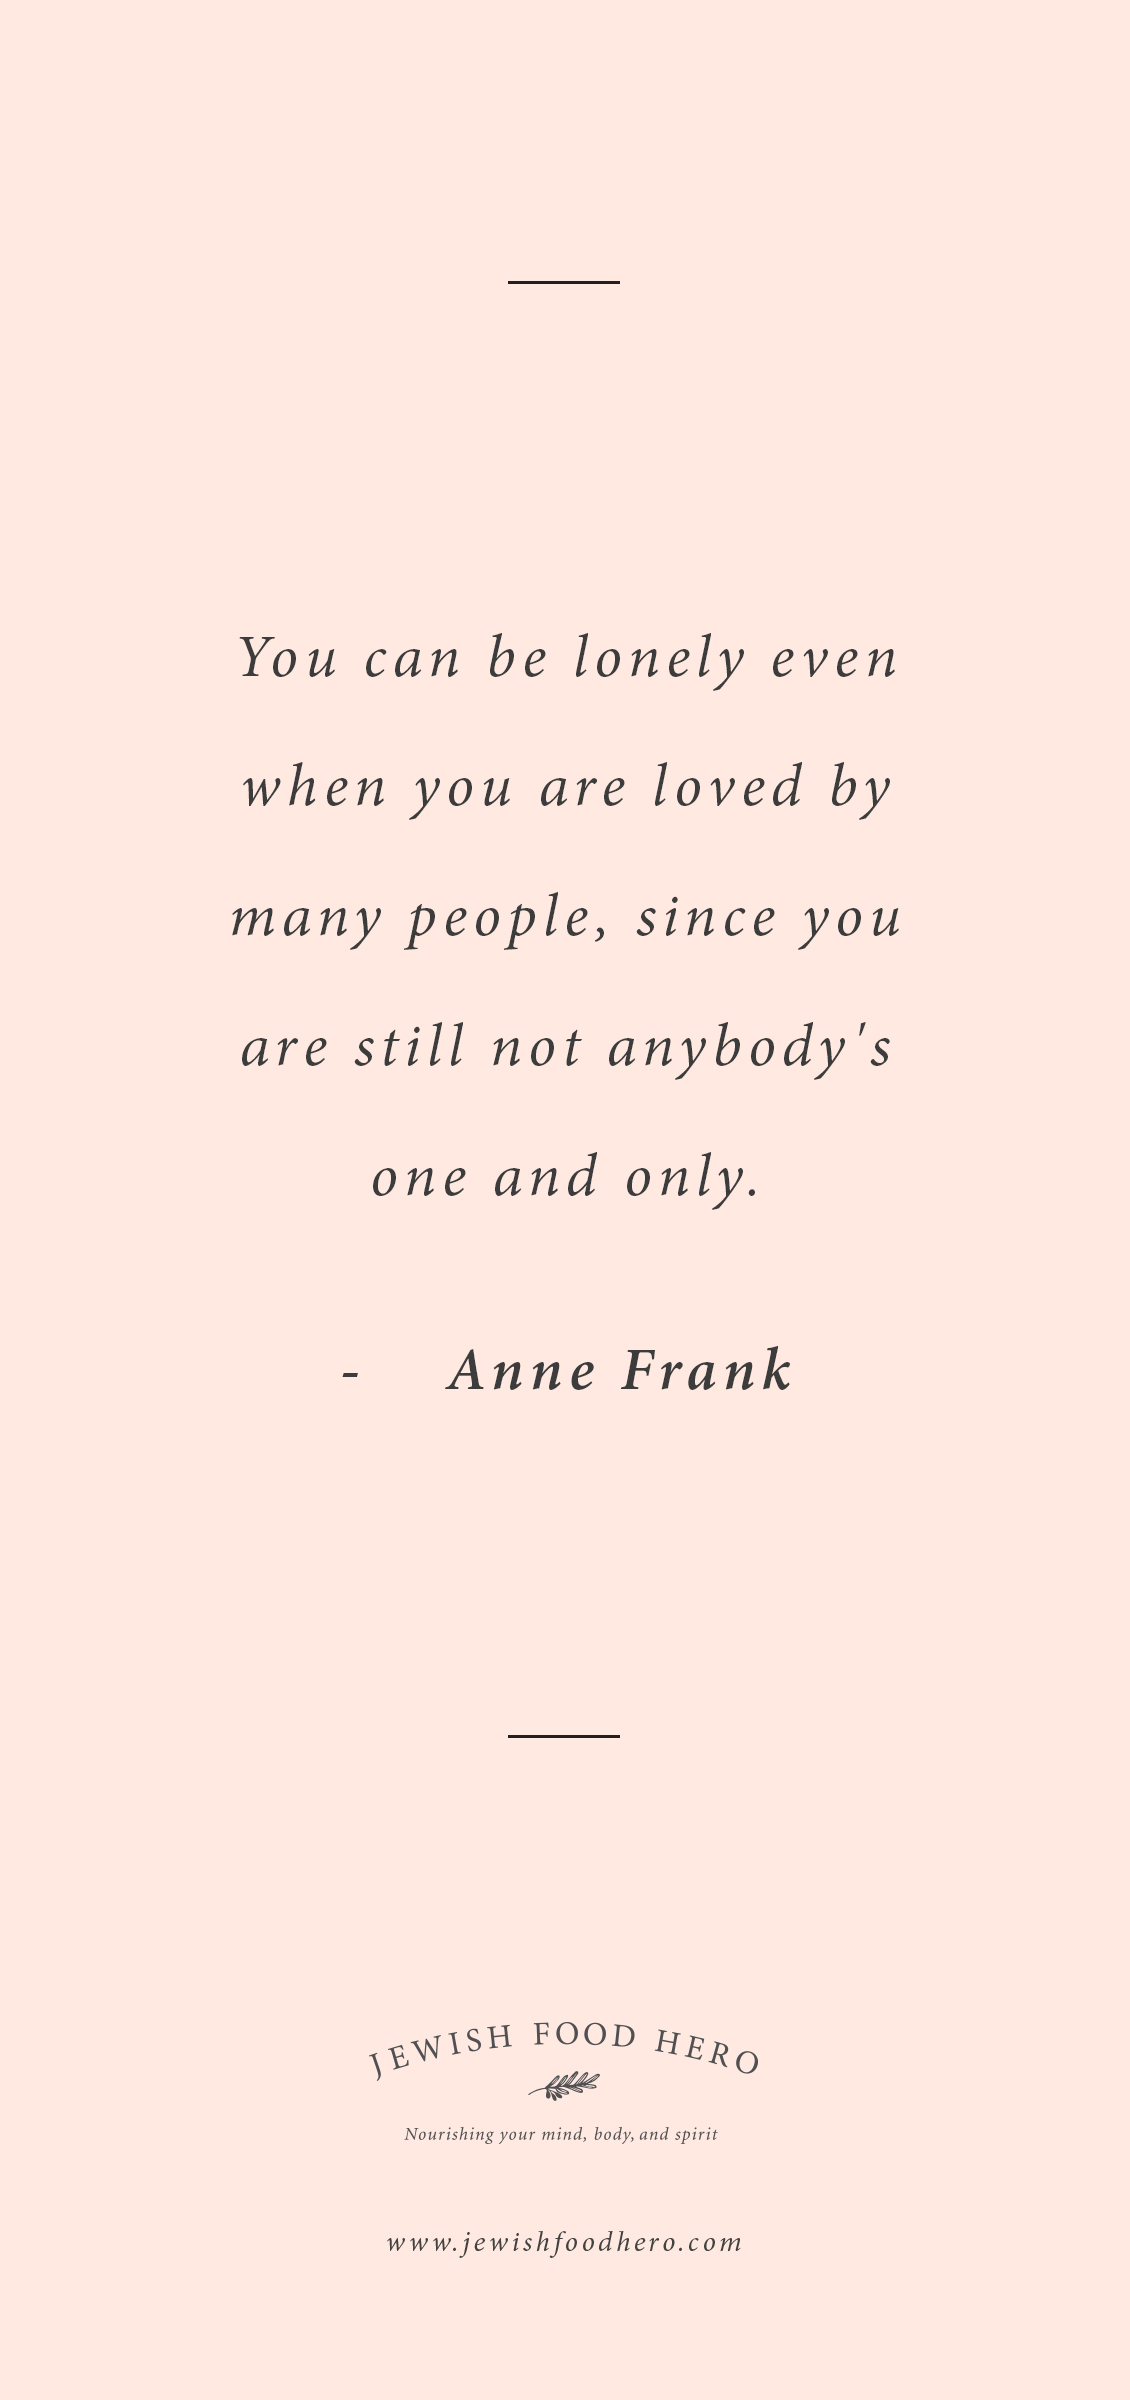 Cheesy Anne Frank Quote Quote For Life Motivation And Famous Jewish Love Quotes That Will Make You Smile Jewish Food Hero